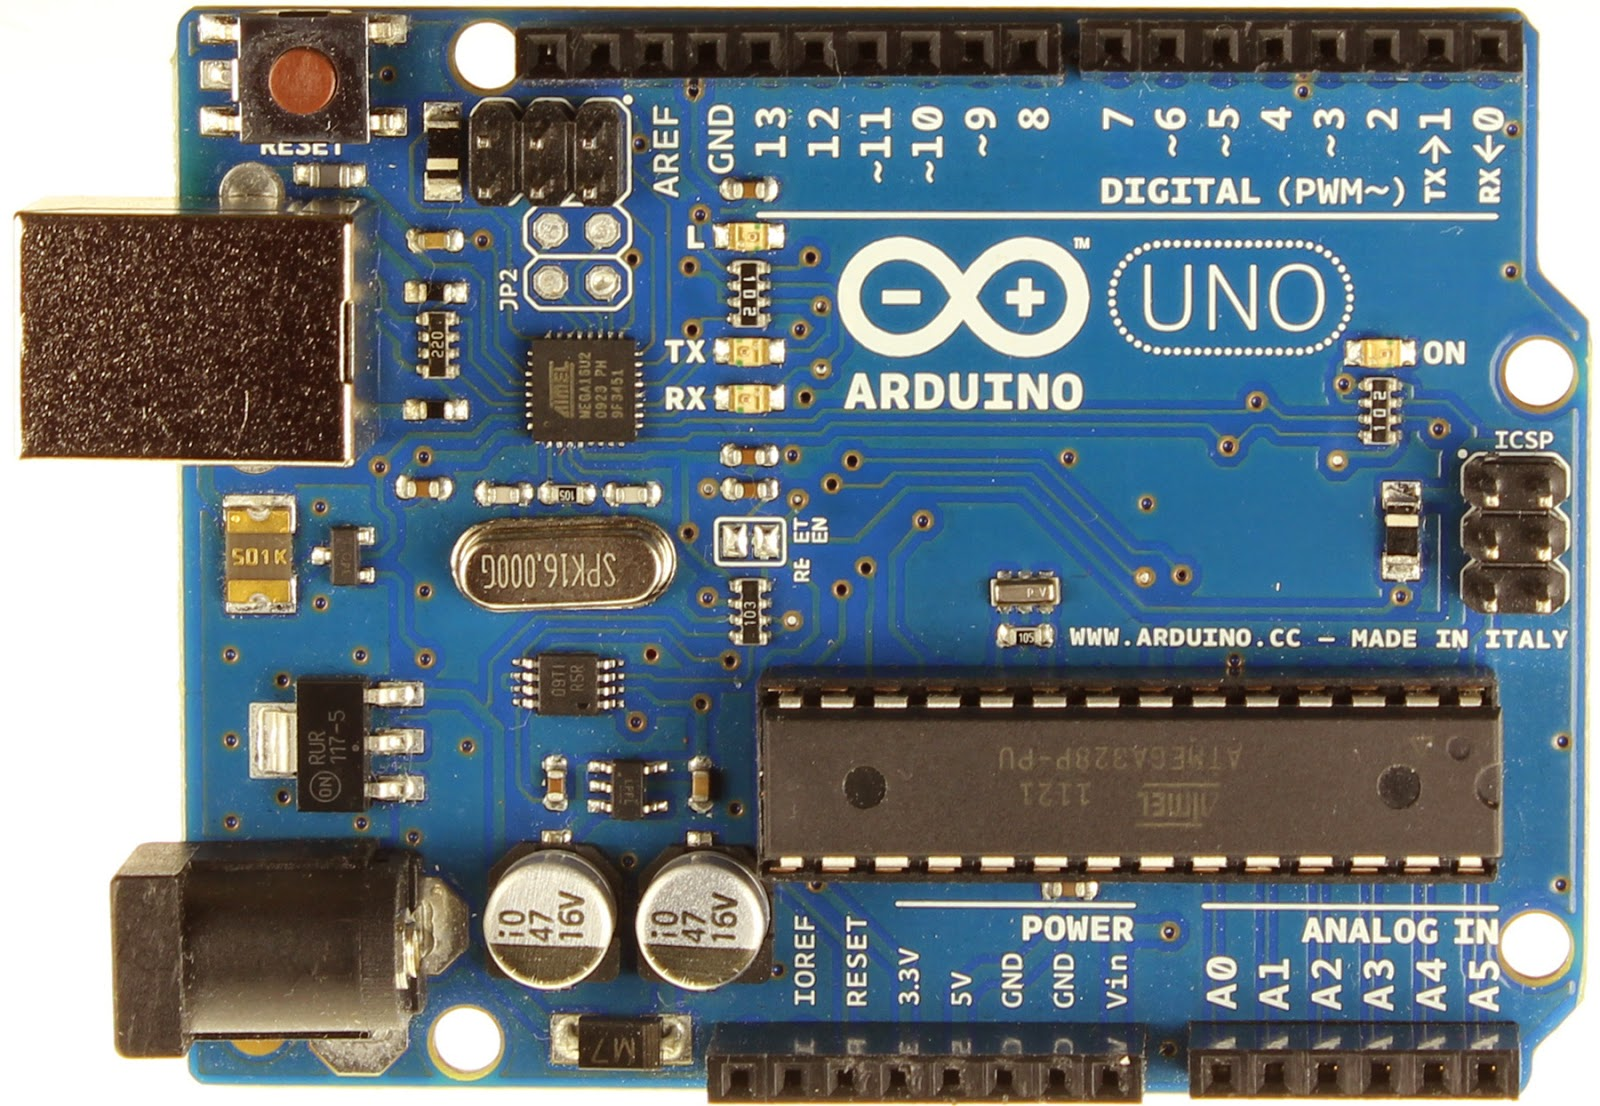 Turn On Led Off From Internet Using Arduino Uno R3 Based Advanced Blink Circuit Webserver Mini Iot Example